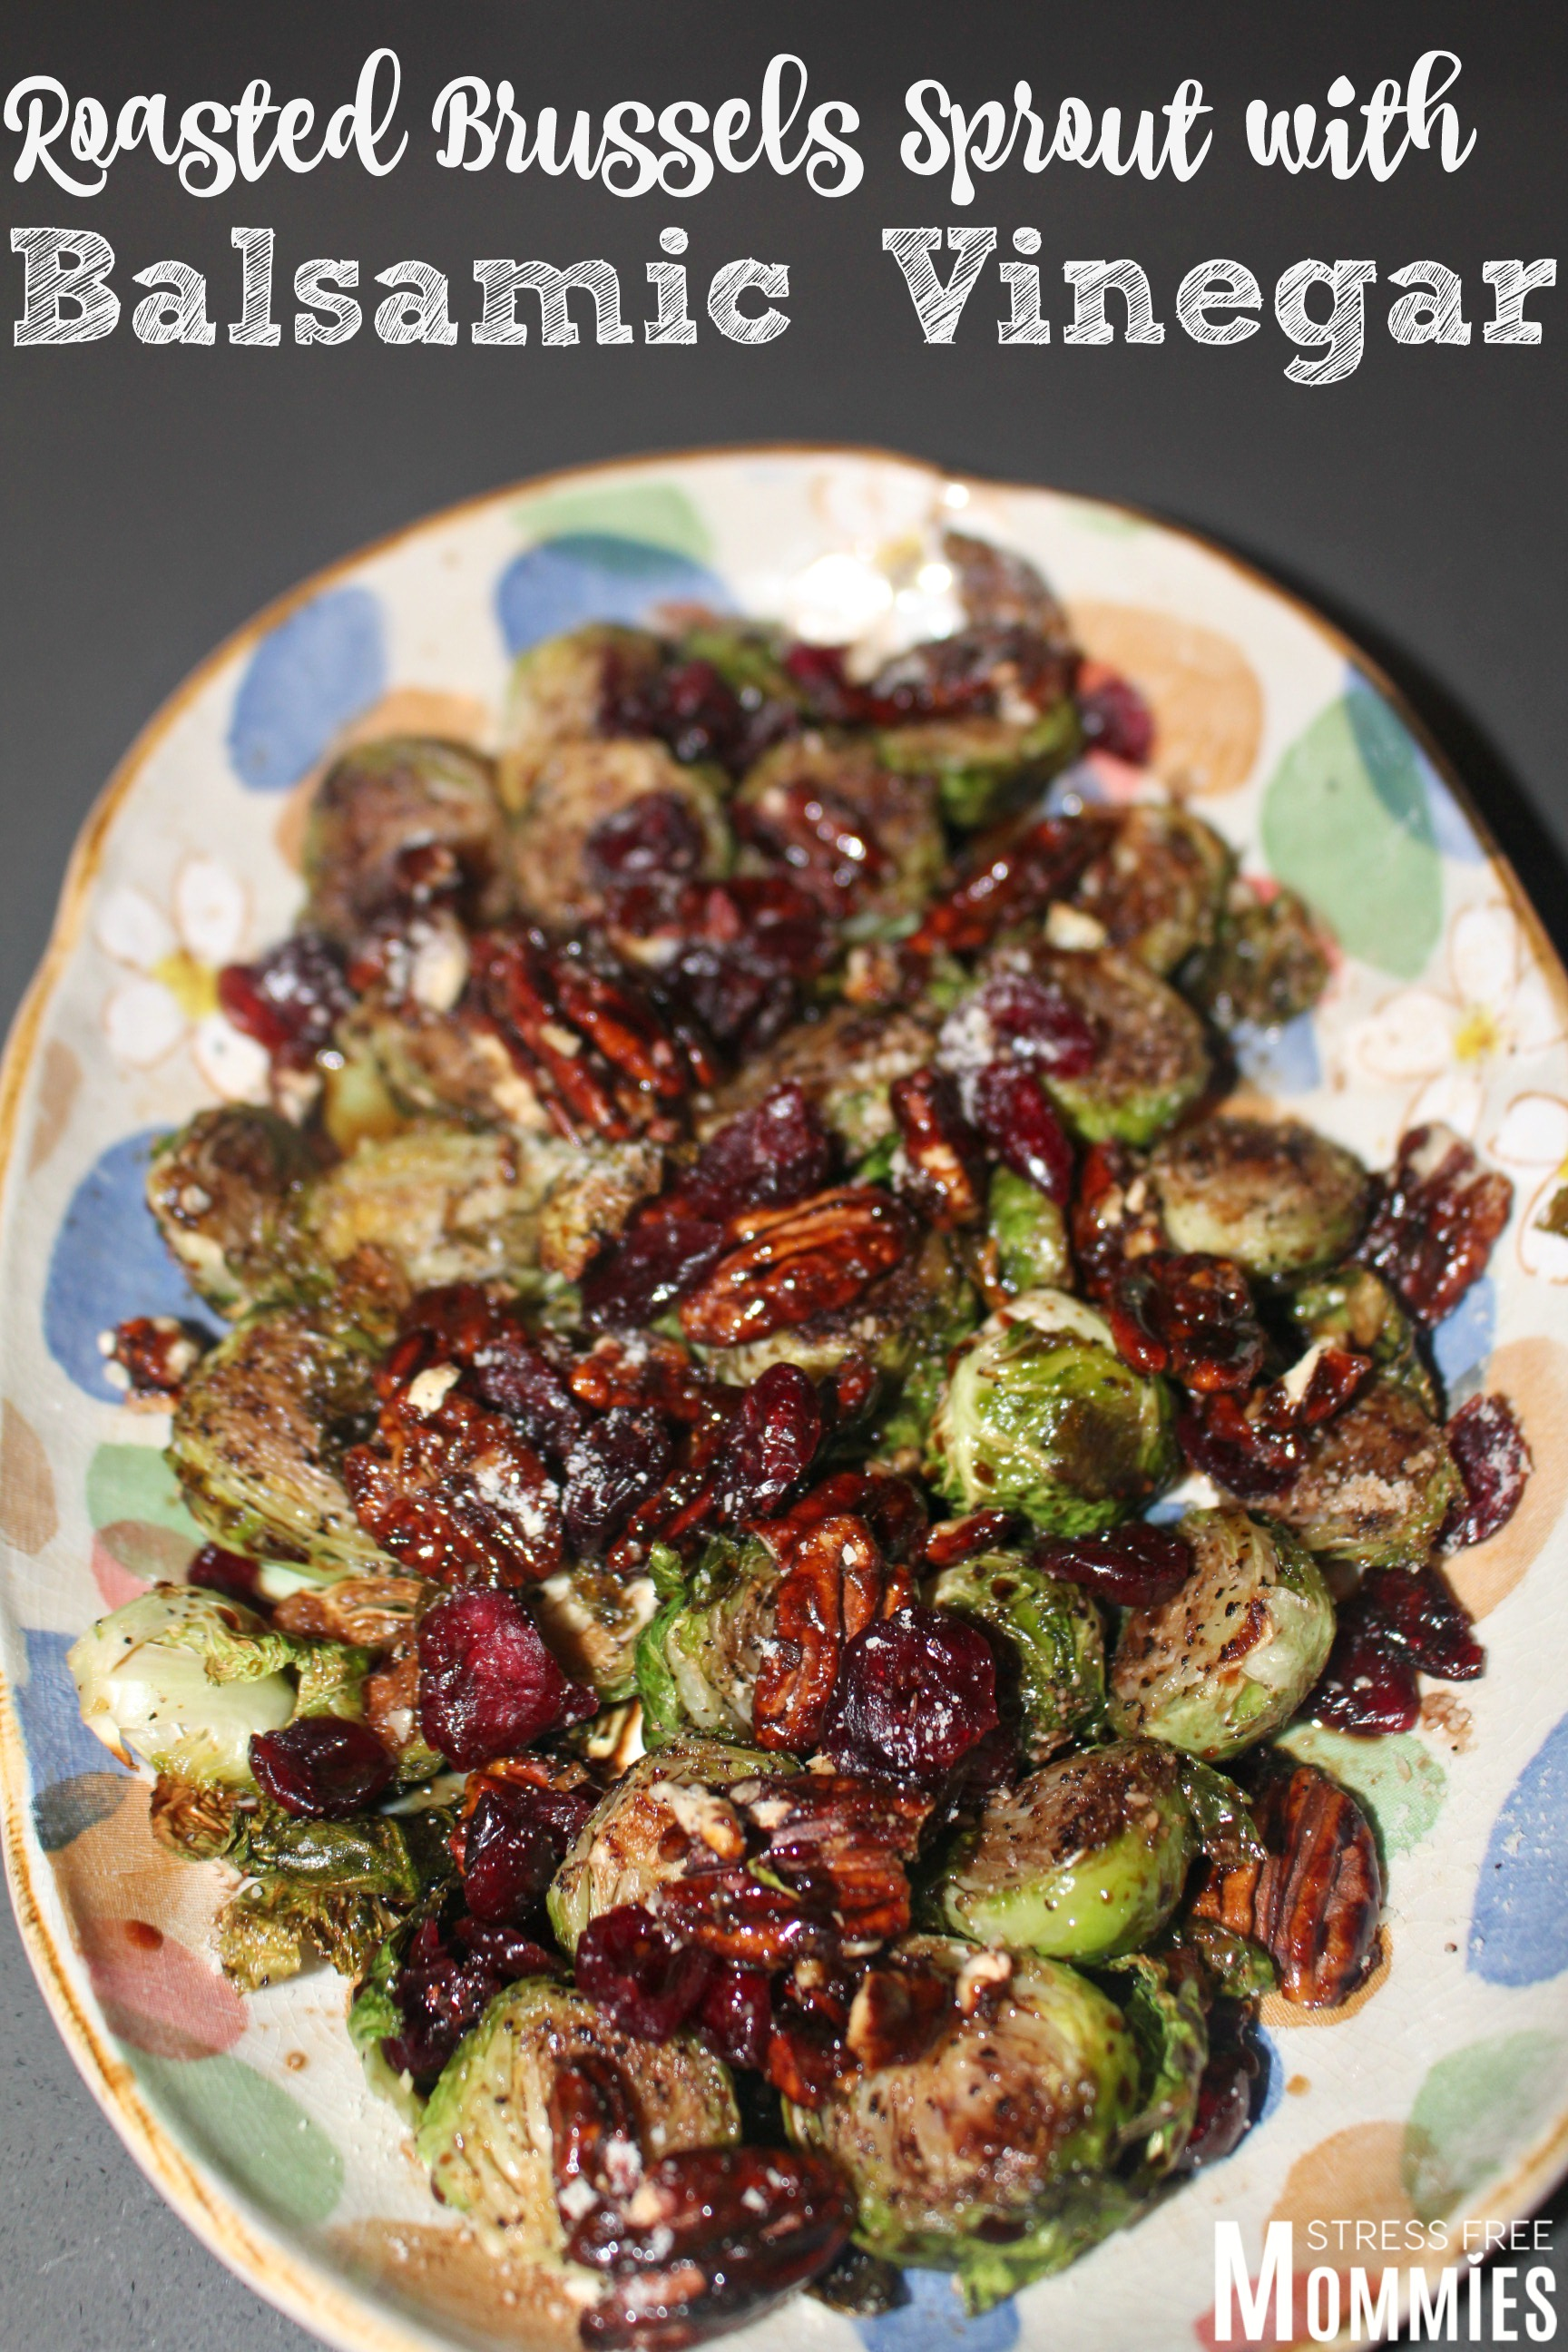 brussels sprout with balsamic vinegar